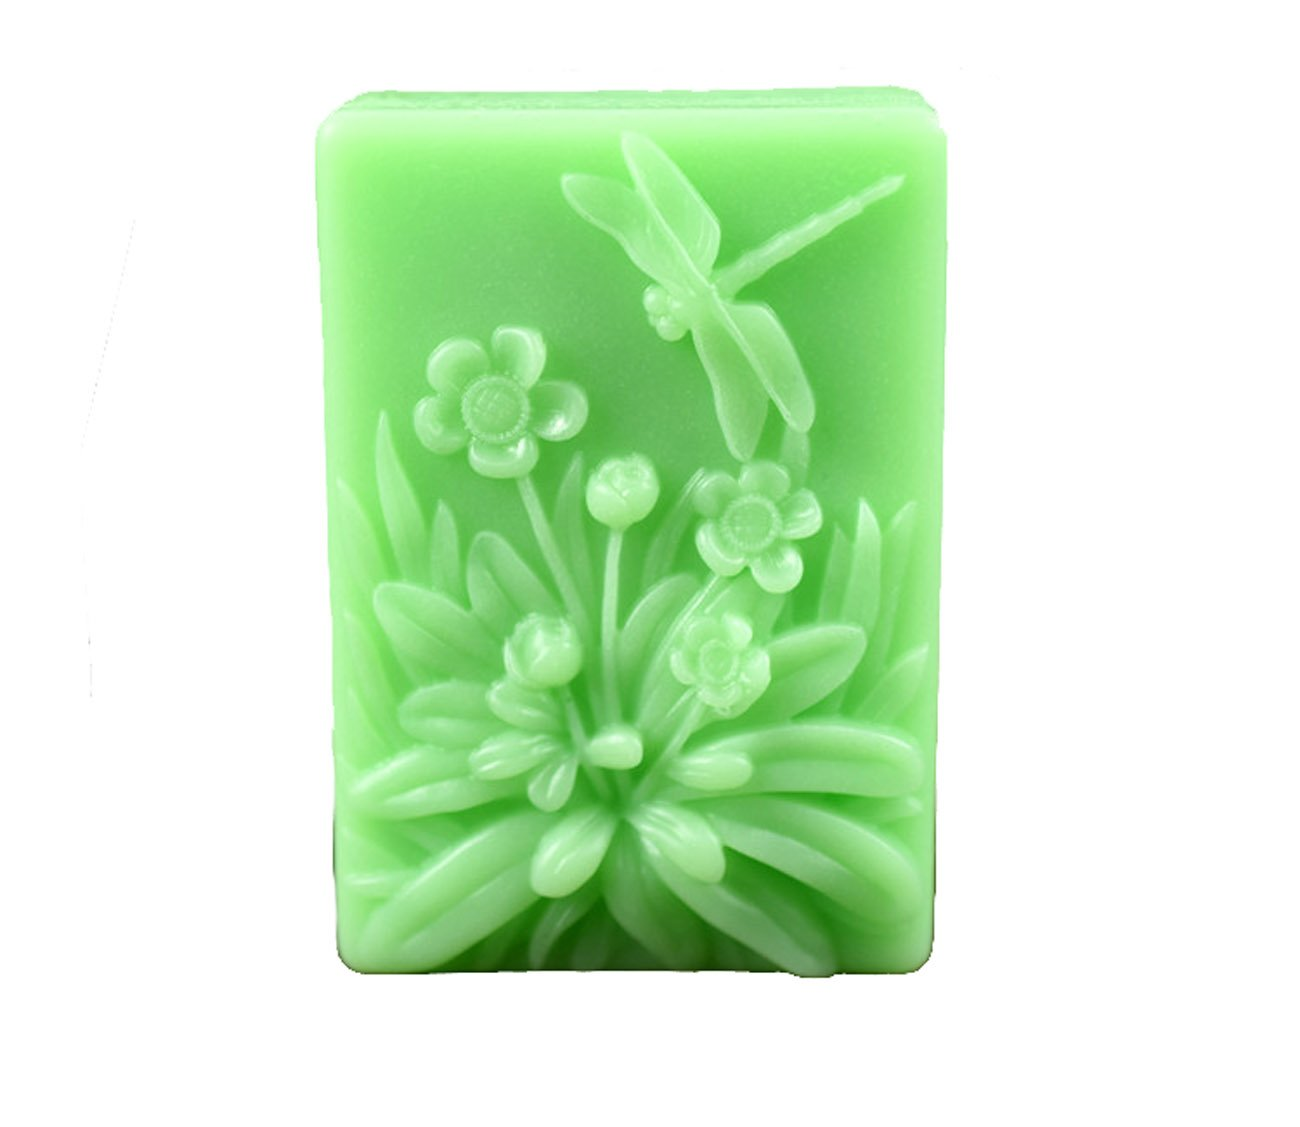 Longzang S515 Dragonfly Flower Silicone Soap Mold 3D Handmade Craft Mould Longzang molds 4336901442